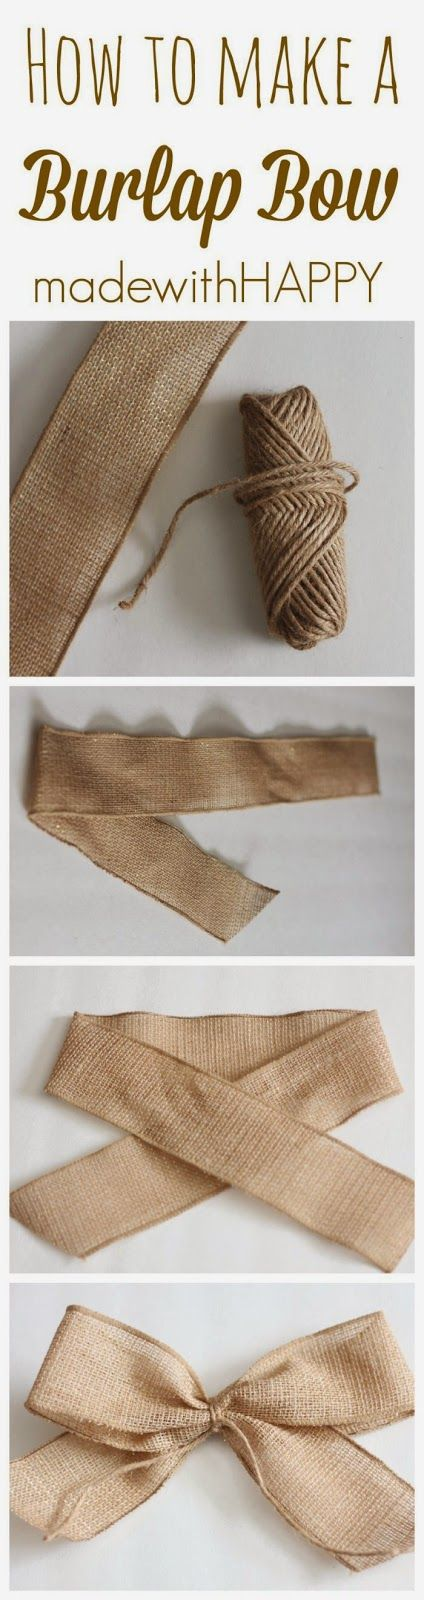 Sue - How to Make a Bow in any fabric. So easy even you can do it.